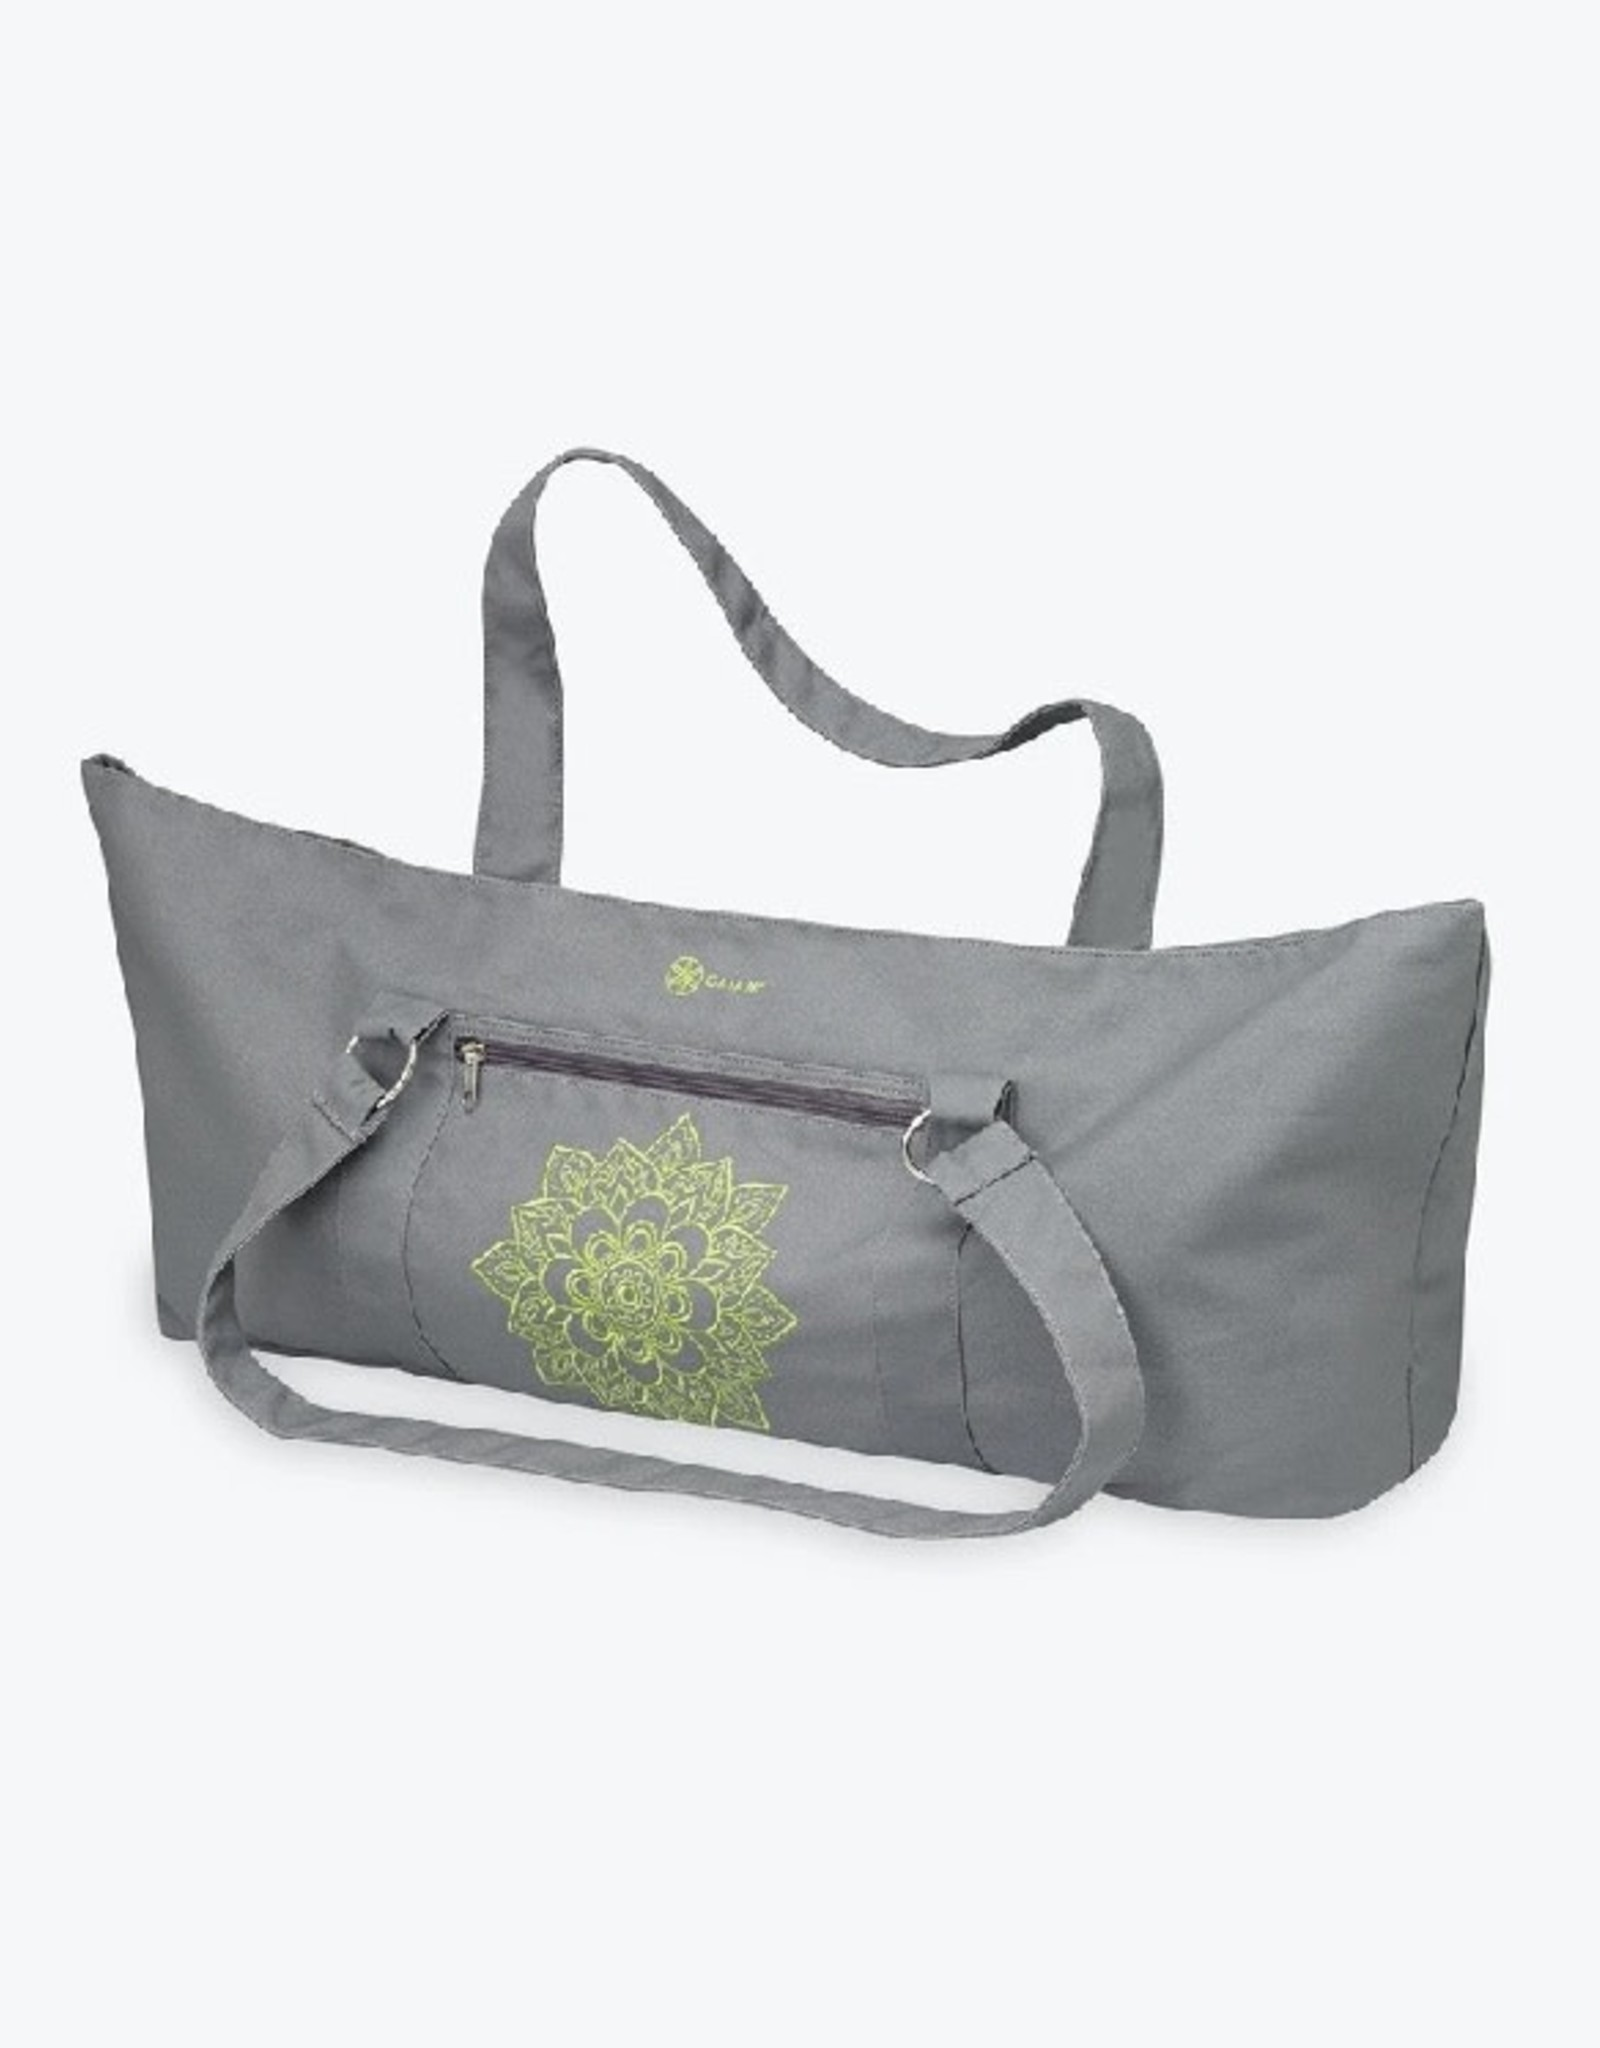 Gaiam Yoga Mat Totes